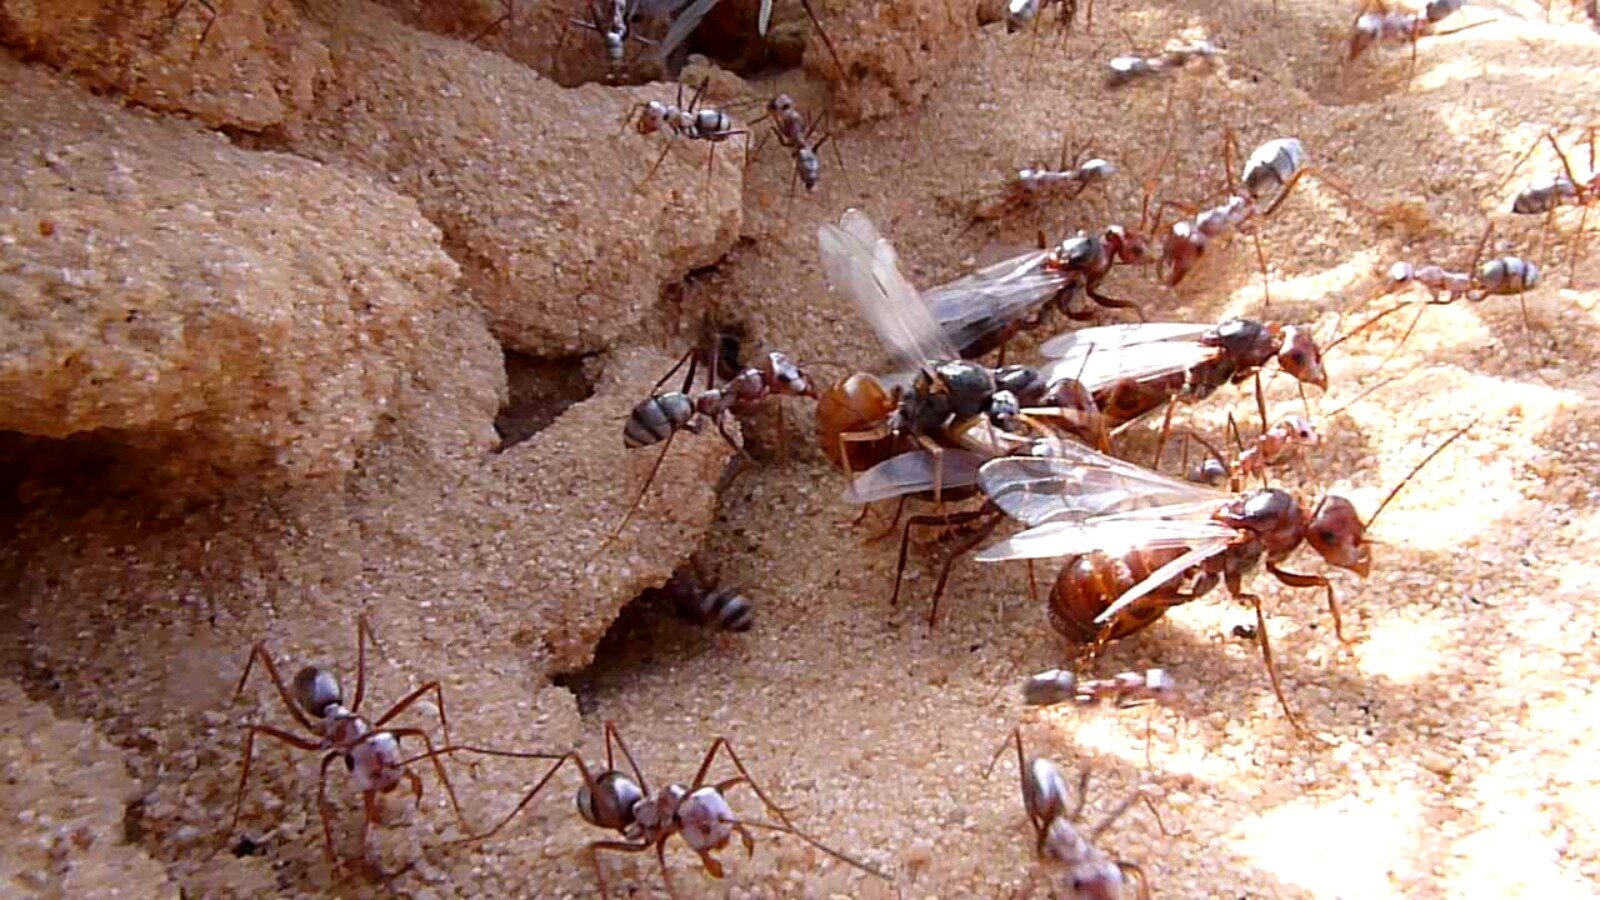 Losing flight had huge benefits for ants, new study finds